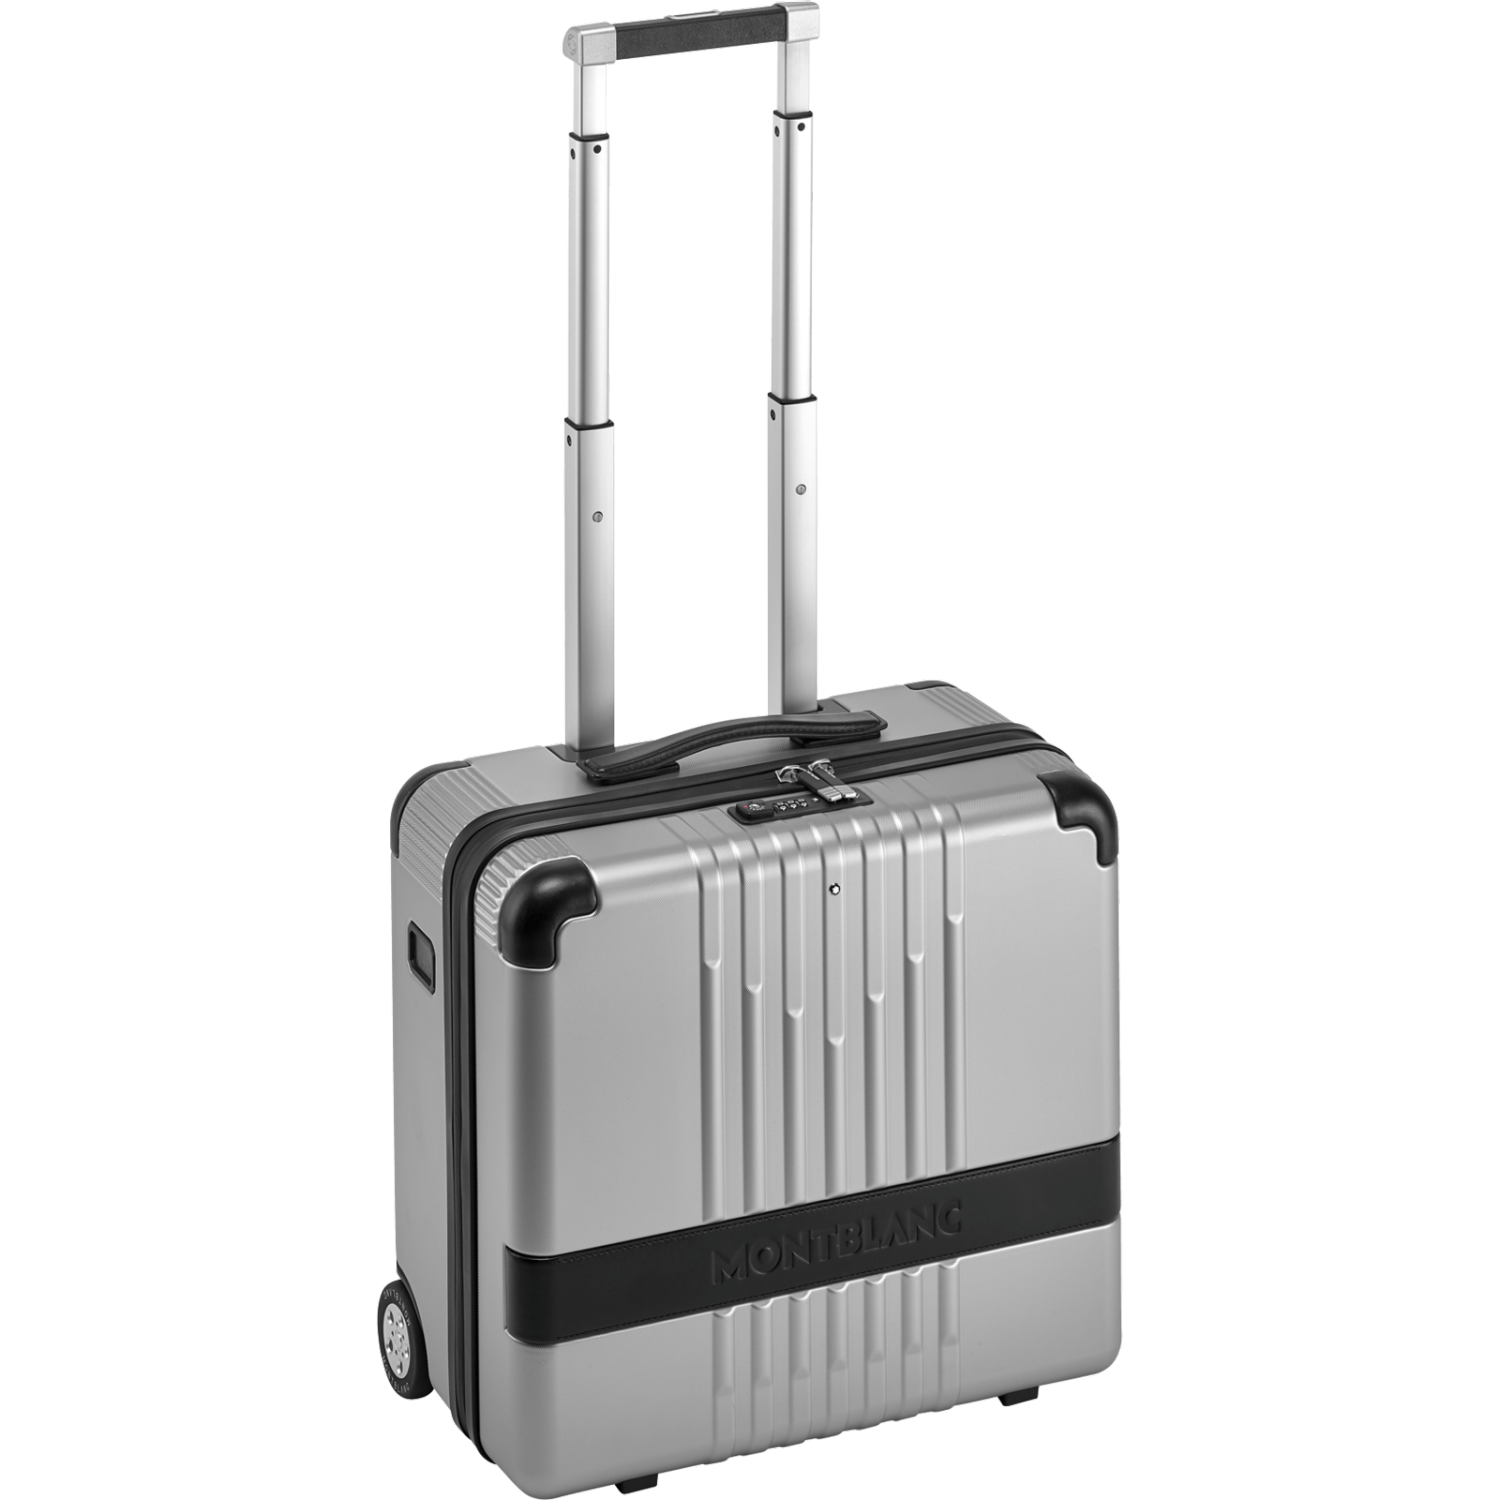 My Montblanc Nightflight trolley cabina 124152 - Casavola Noci - main